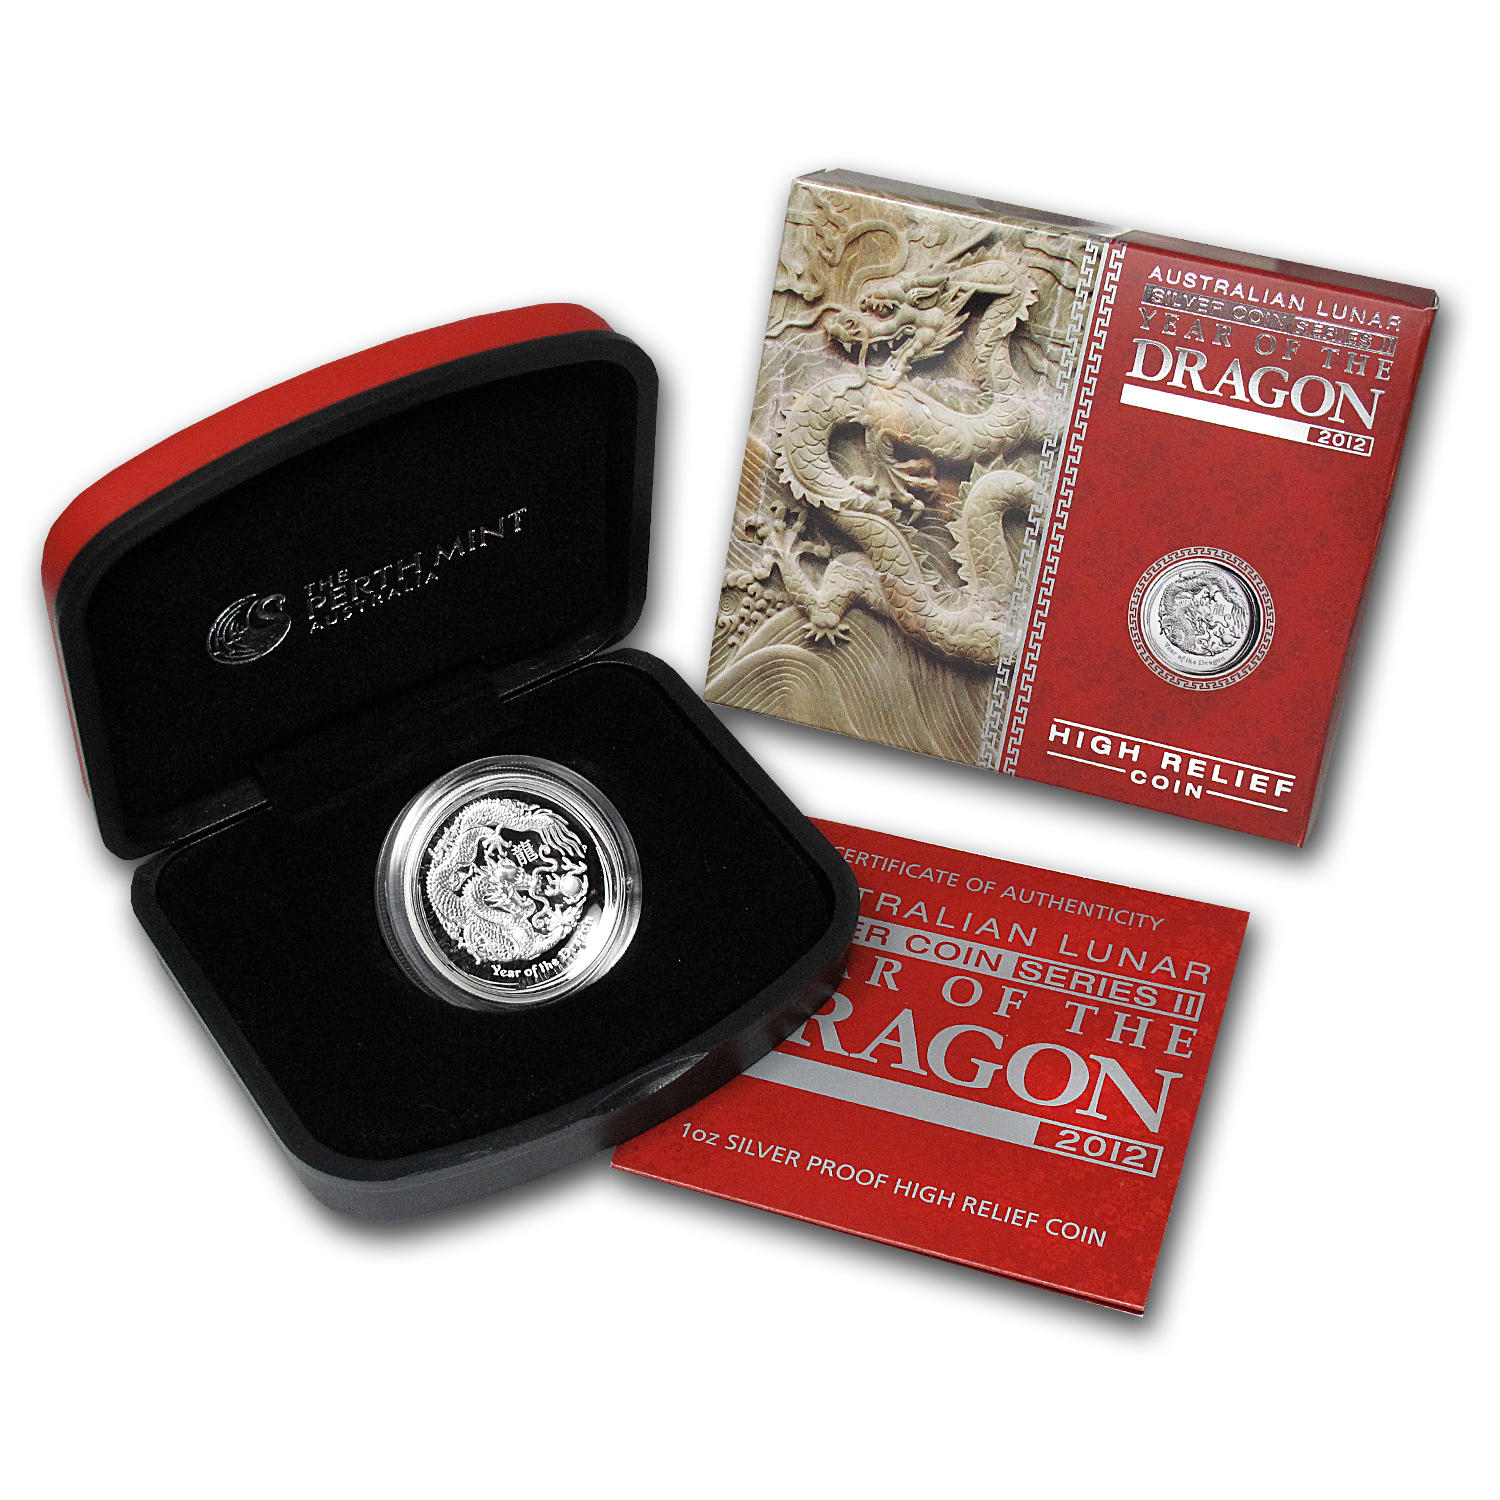 2012 1 oz Silver Year of the Dragon High Relief Proof Coin